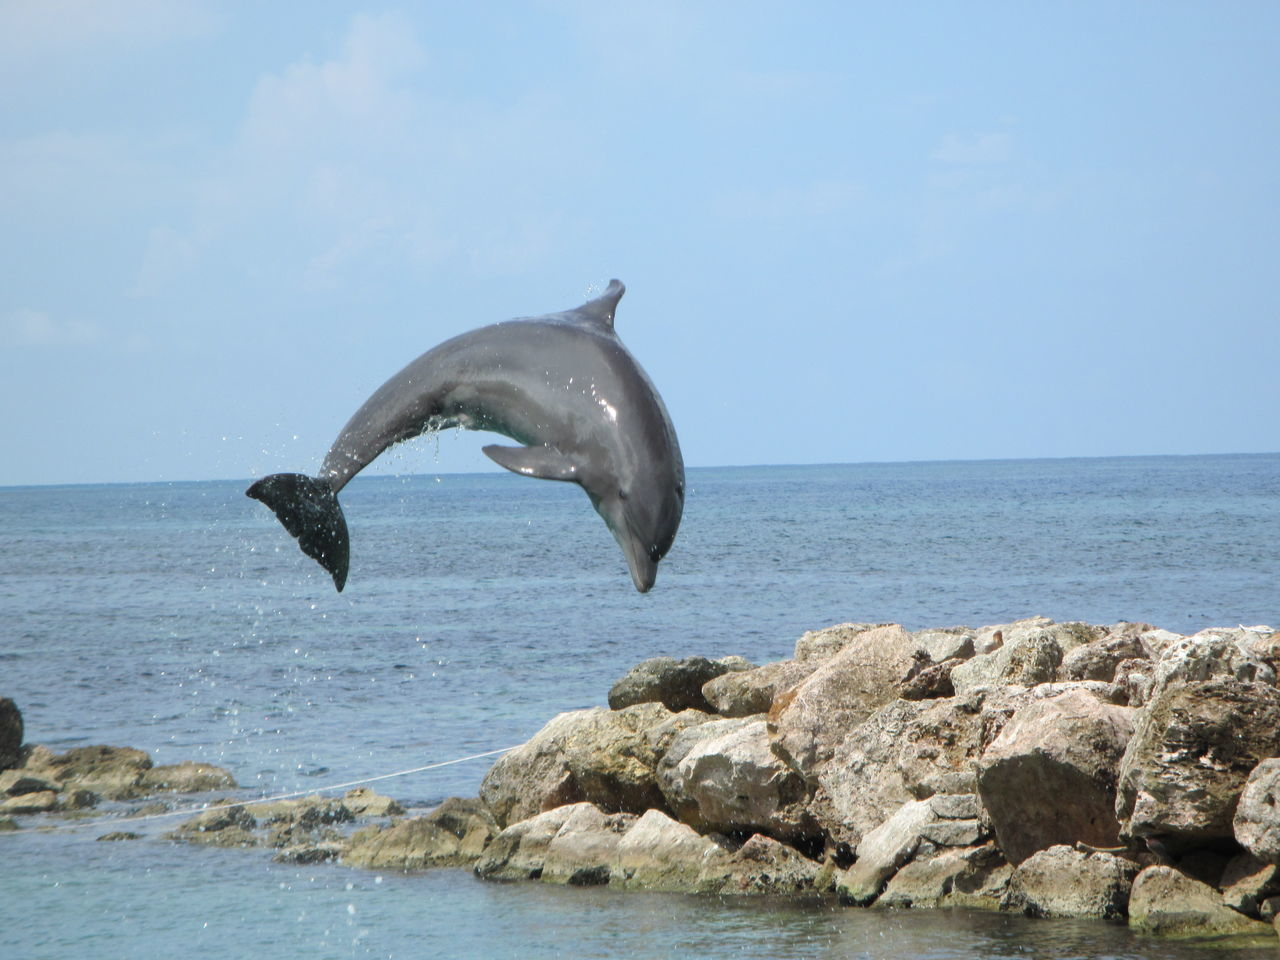 Animal Wildlife Animals In The Wild Dolphin Nature No People One Animal Sea Sea Life Water jumping Dolphin